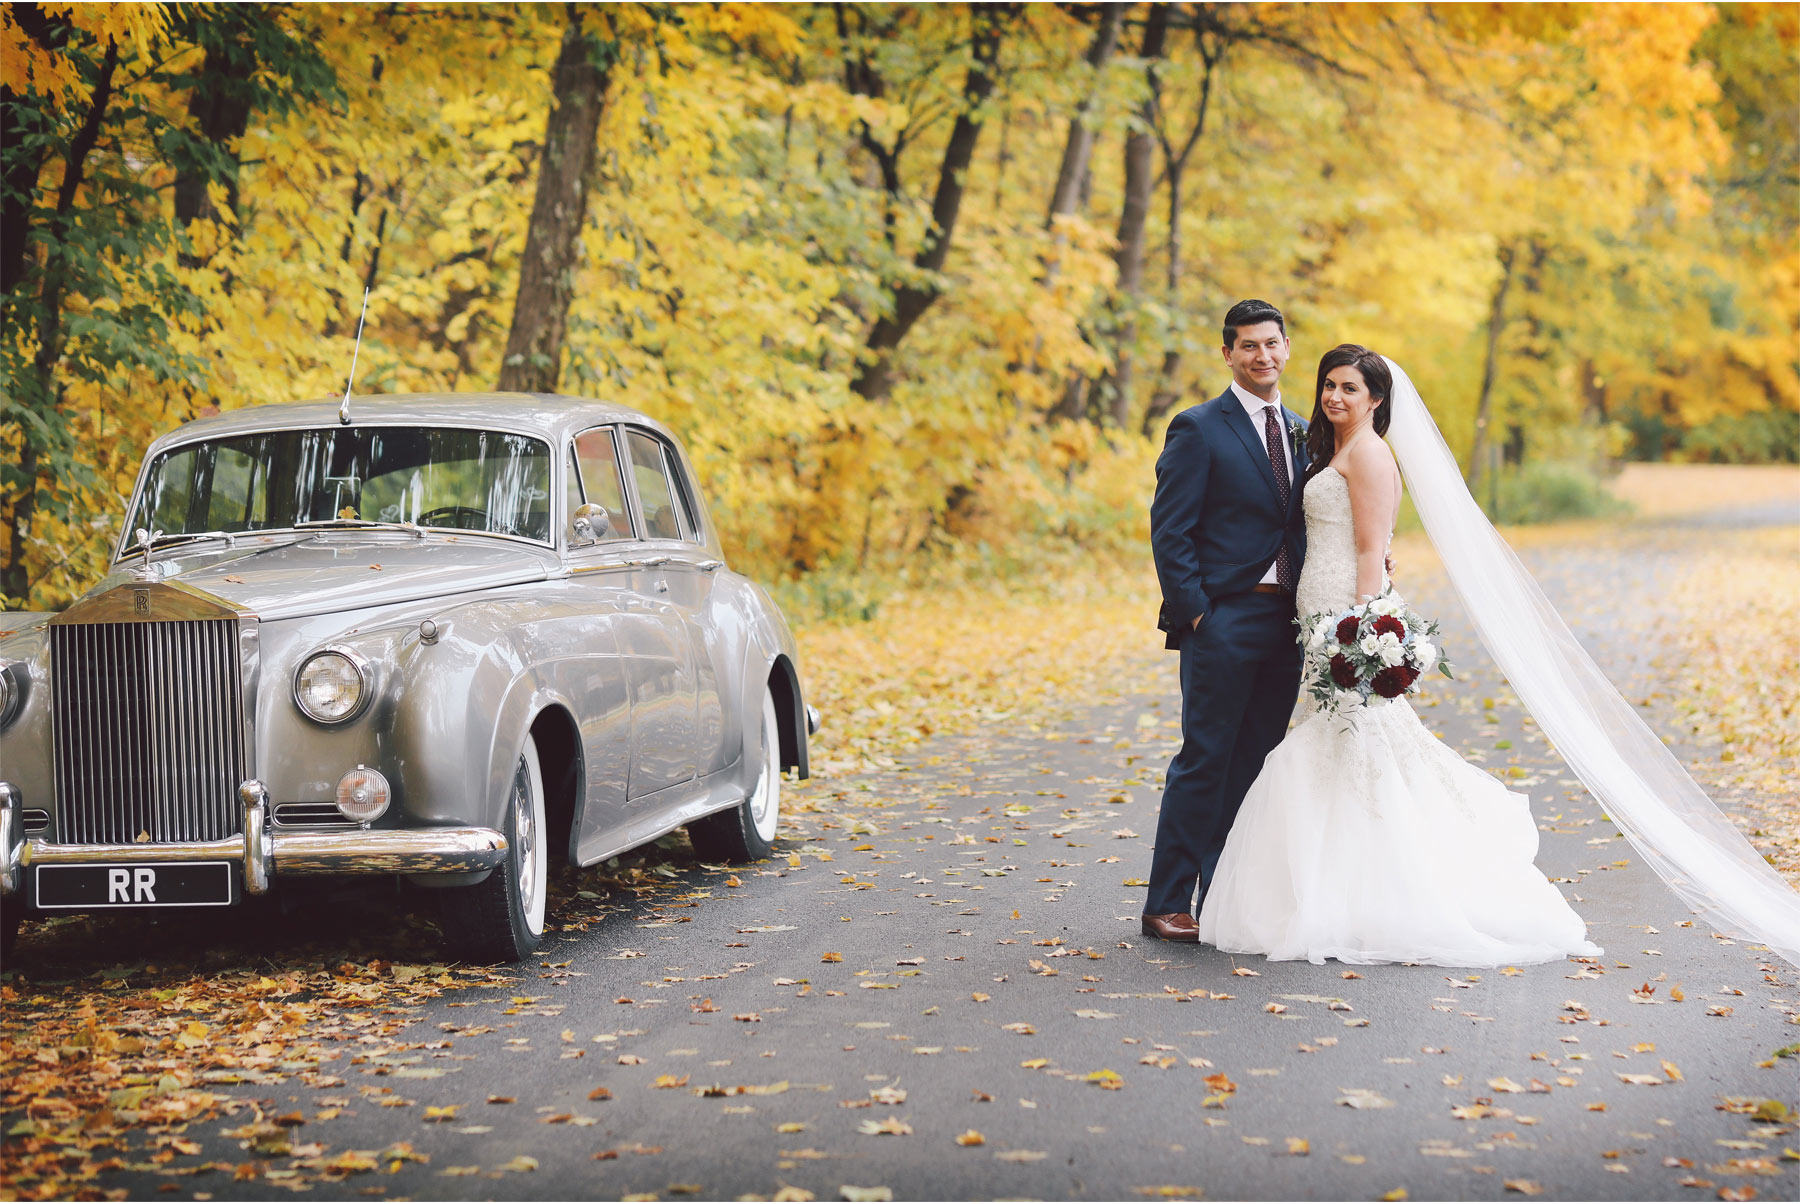 09-Minneapolis-Minnesota-Wedding-Photography-by-Vick-Photography-Classic-Car-Autumn-Fall-Colors-Bride-and-Groom-Jana-and-Matt.jpg